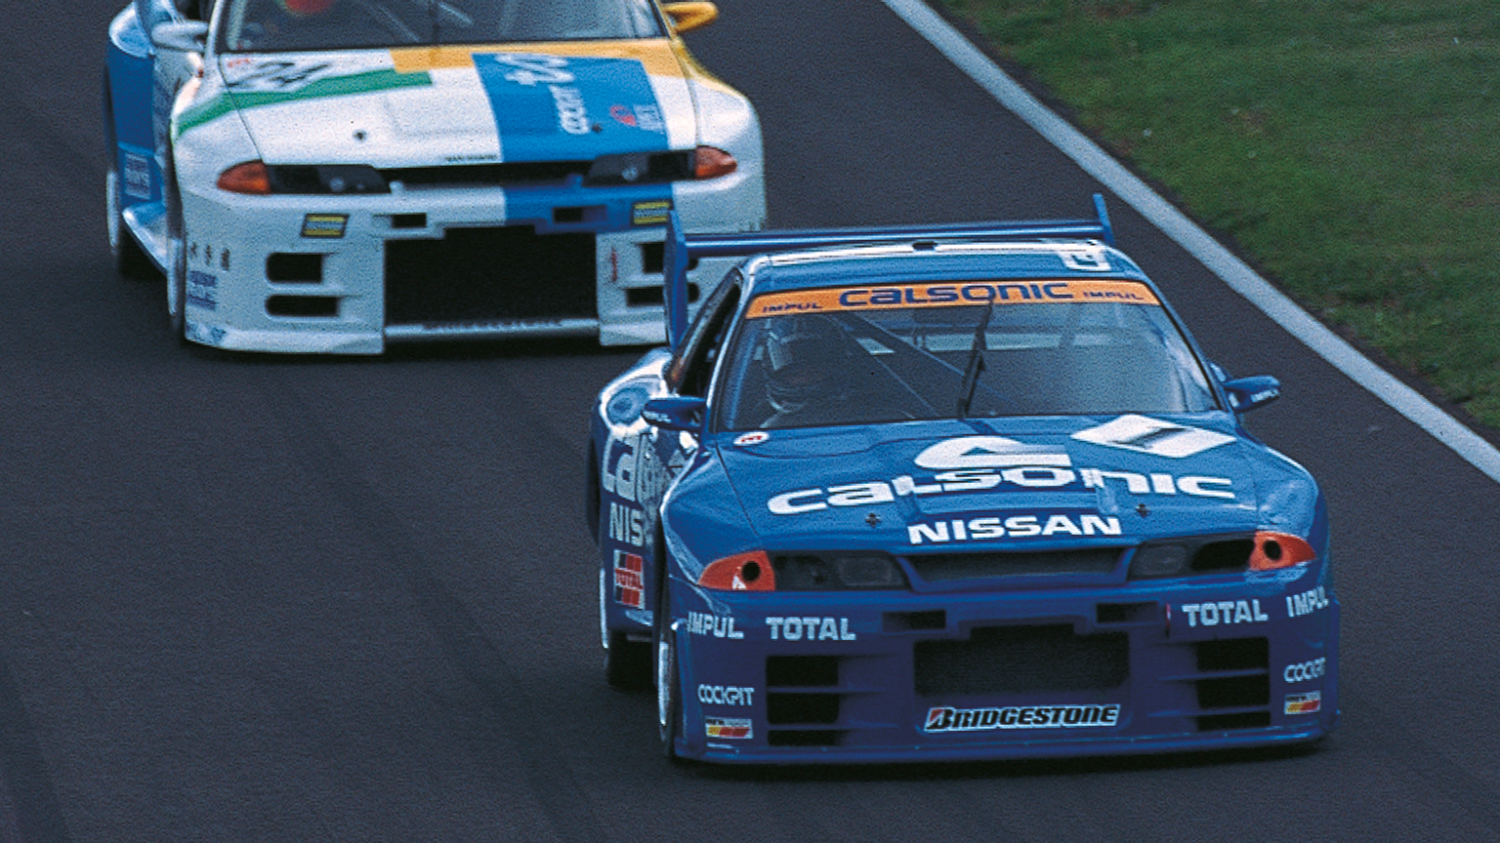 Nissan | NISMO | Nissan race cars on the track